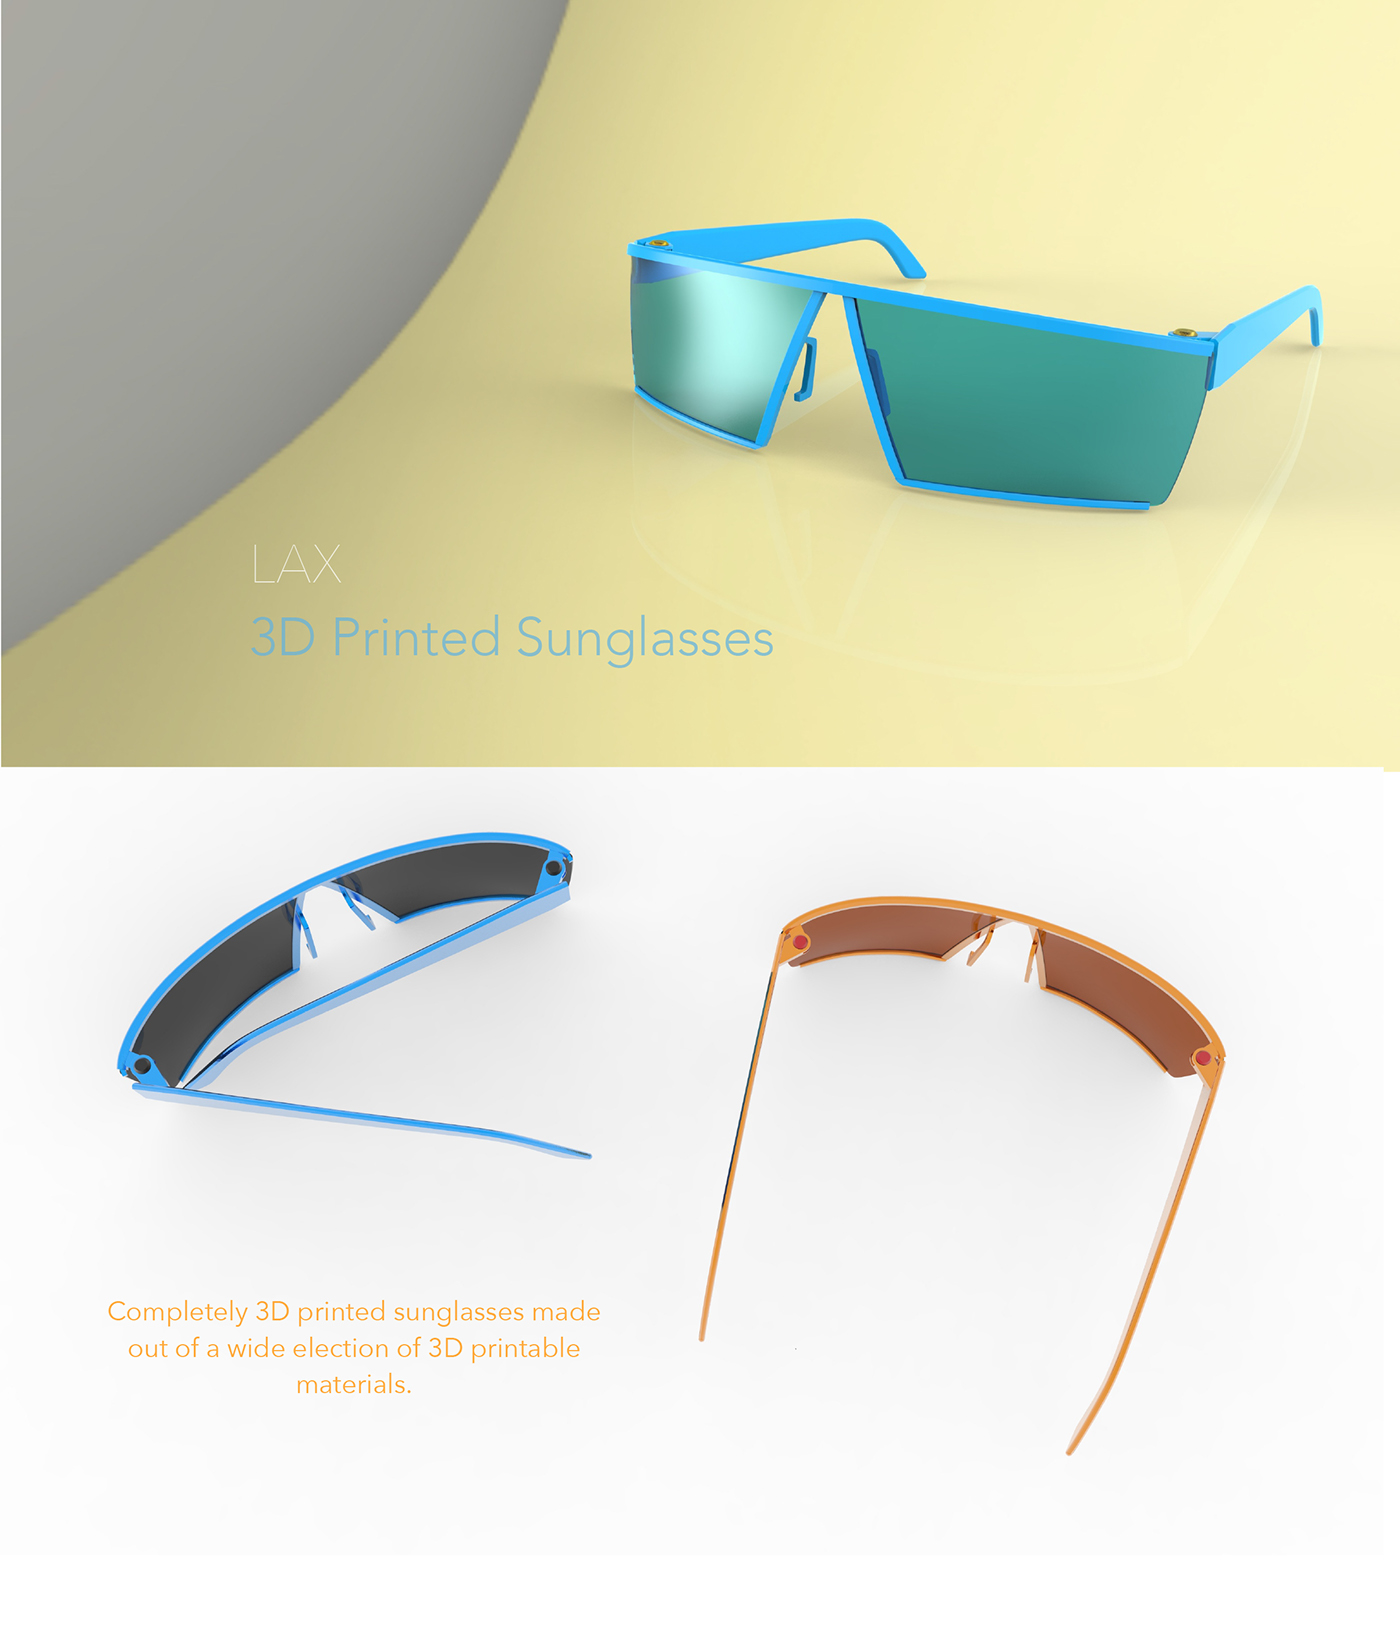 graphic about Sunglasses Printable called 3D Printable Sungles upon Behance